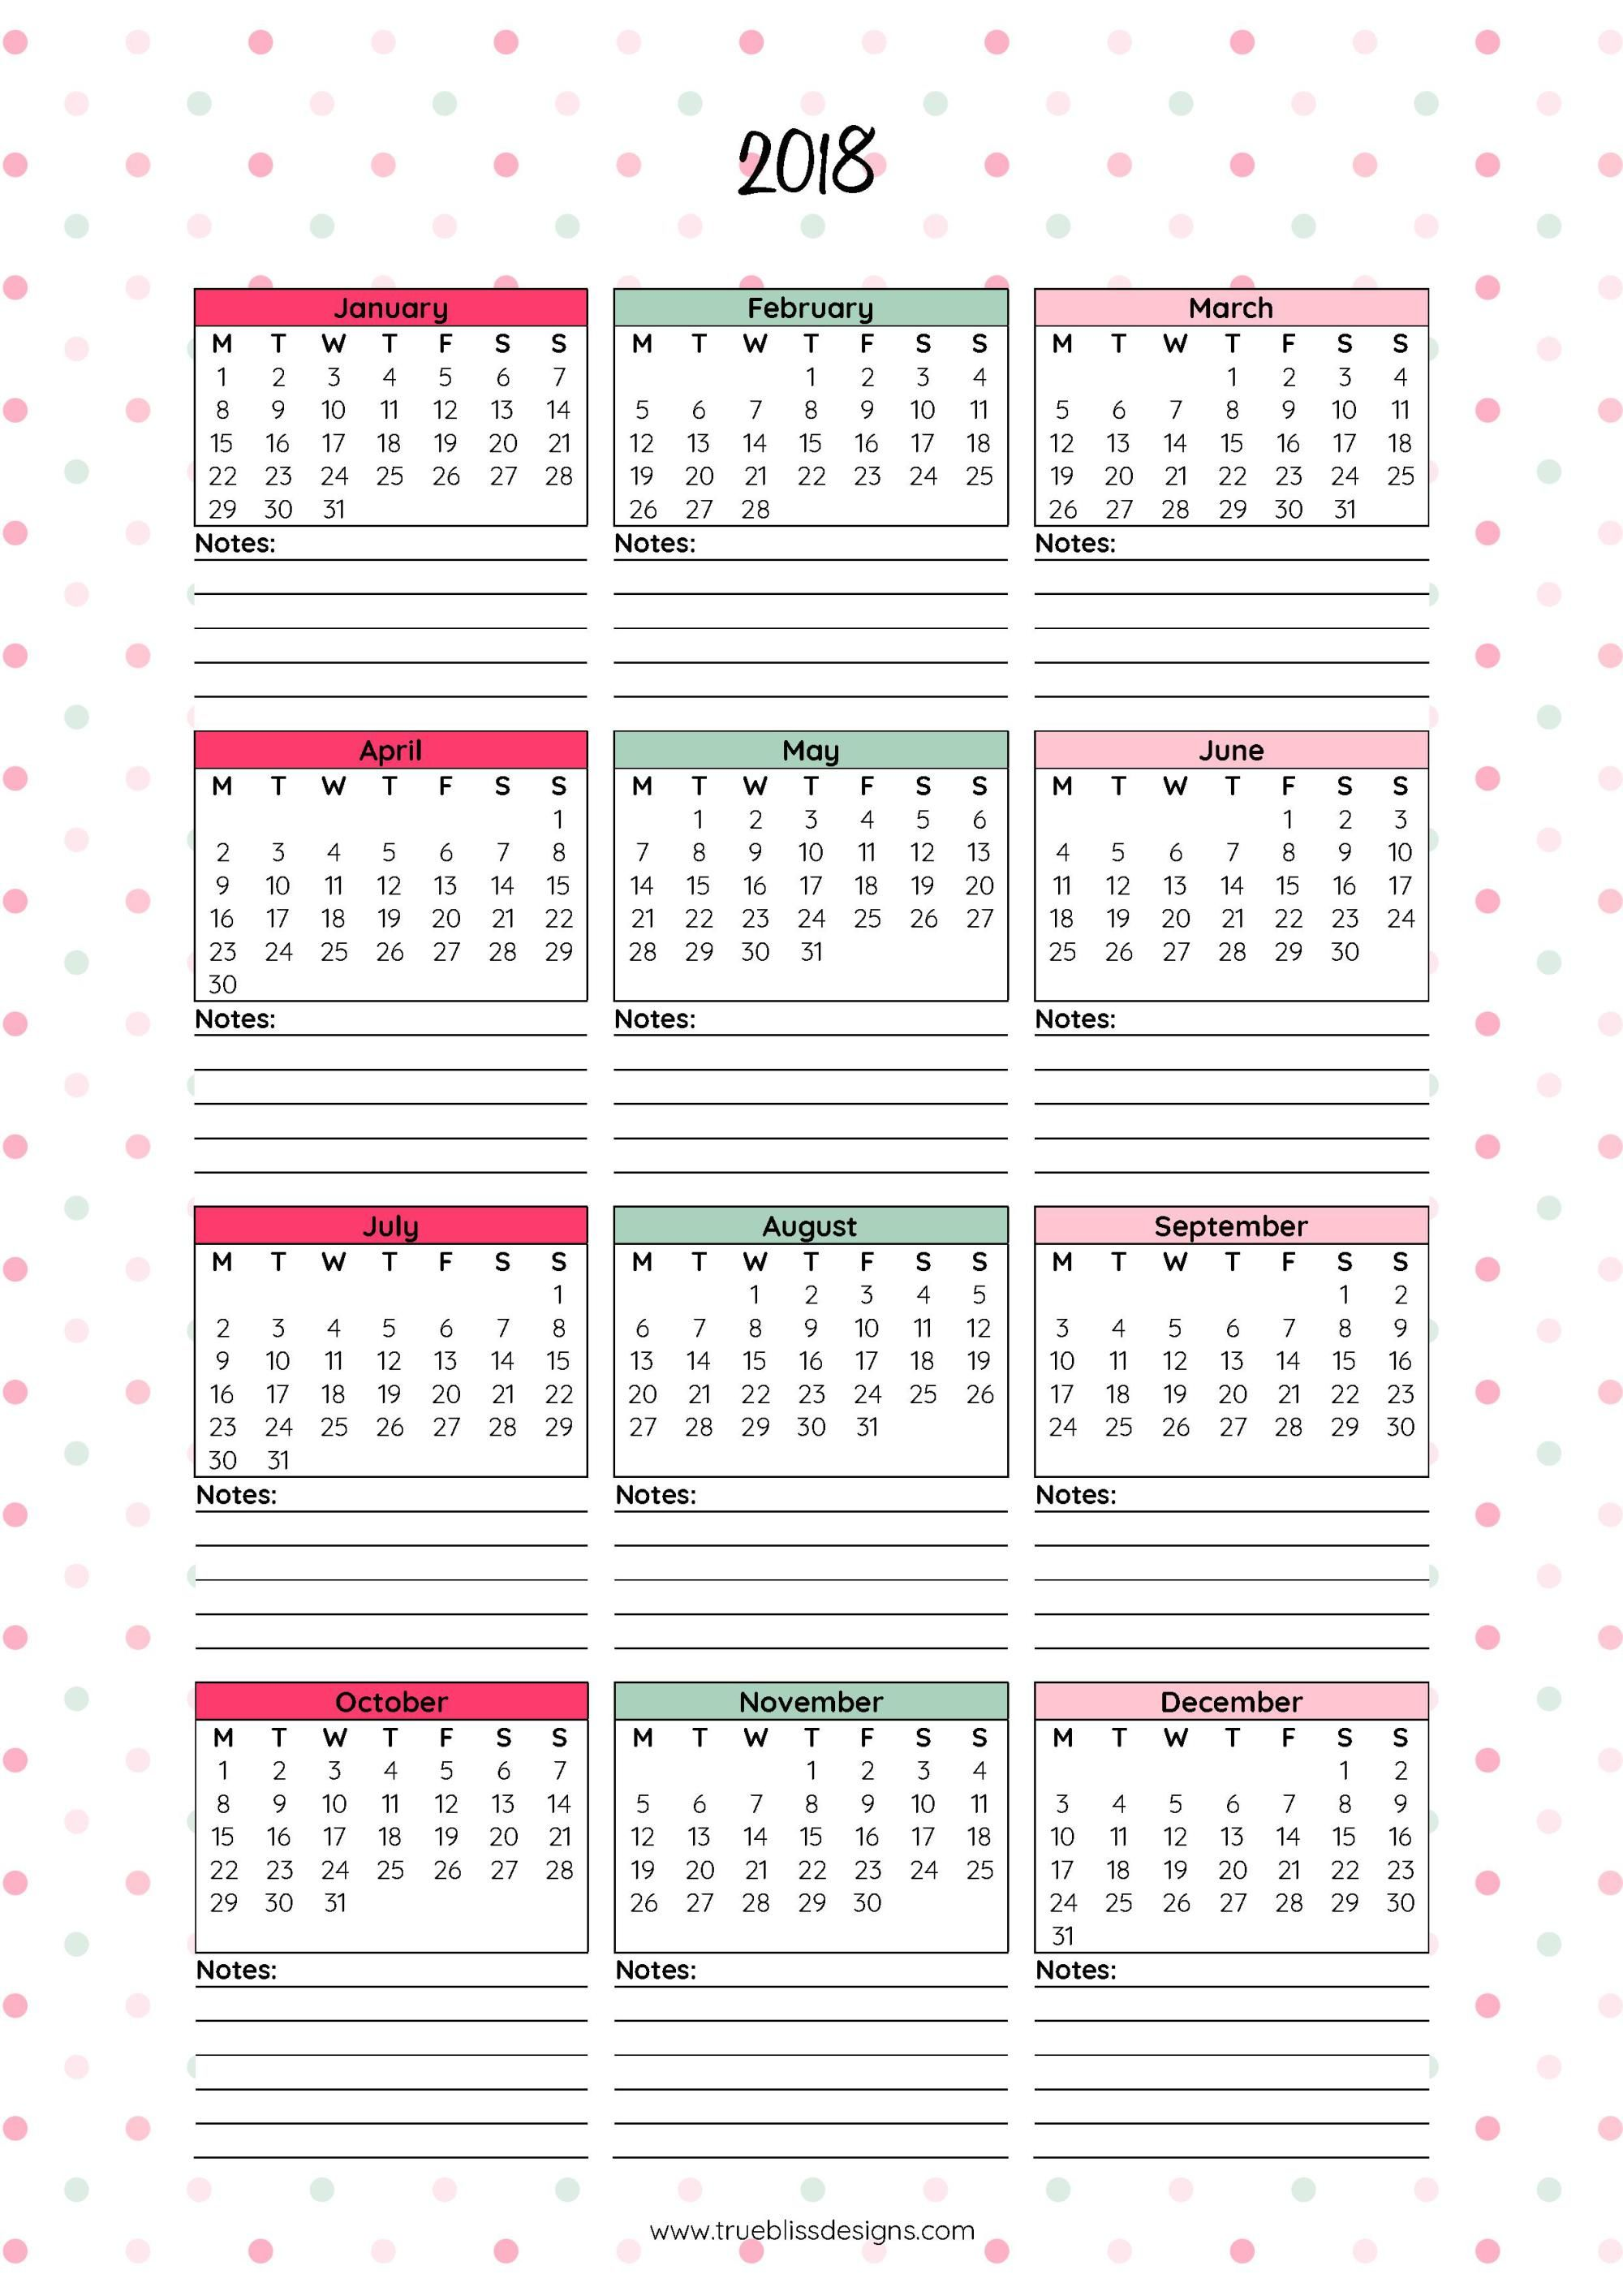 year at glance calendar 2018